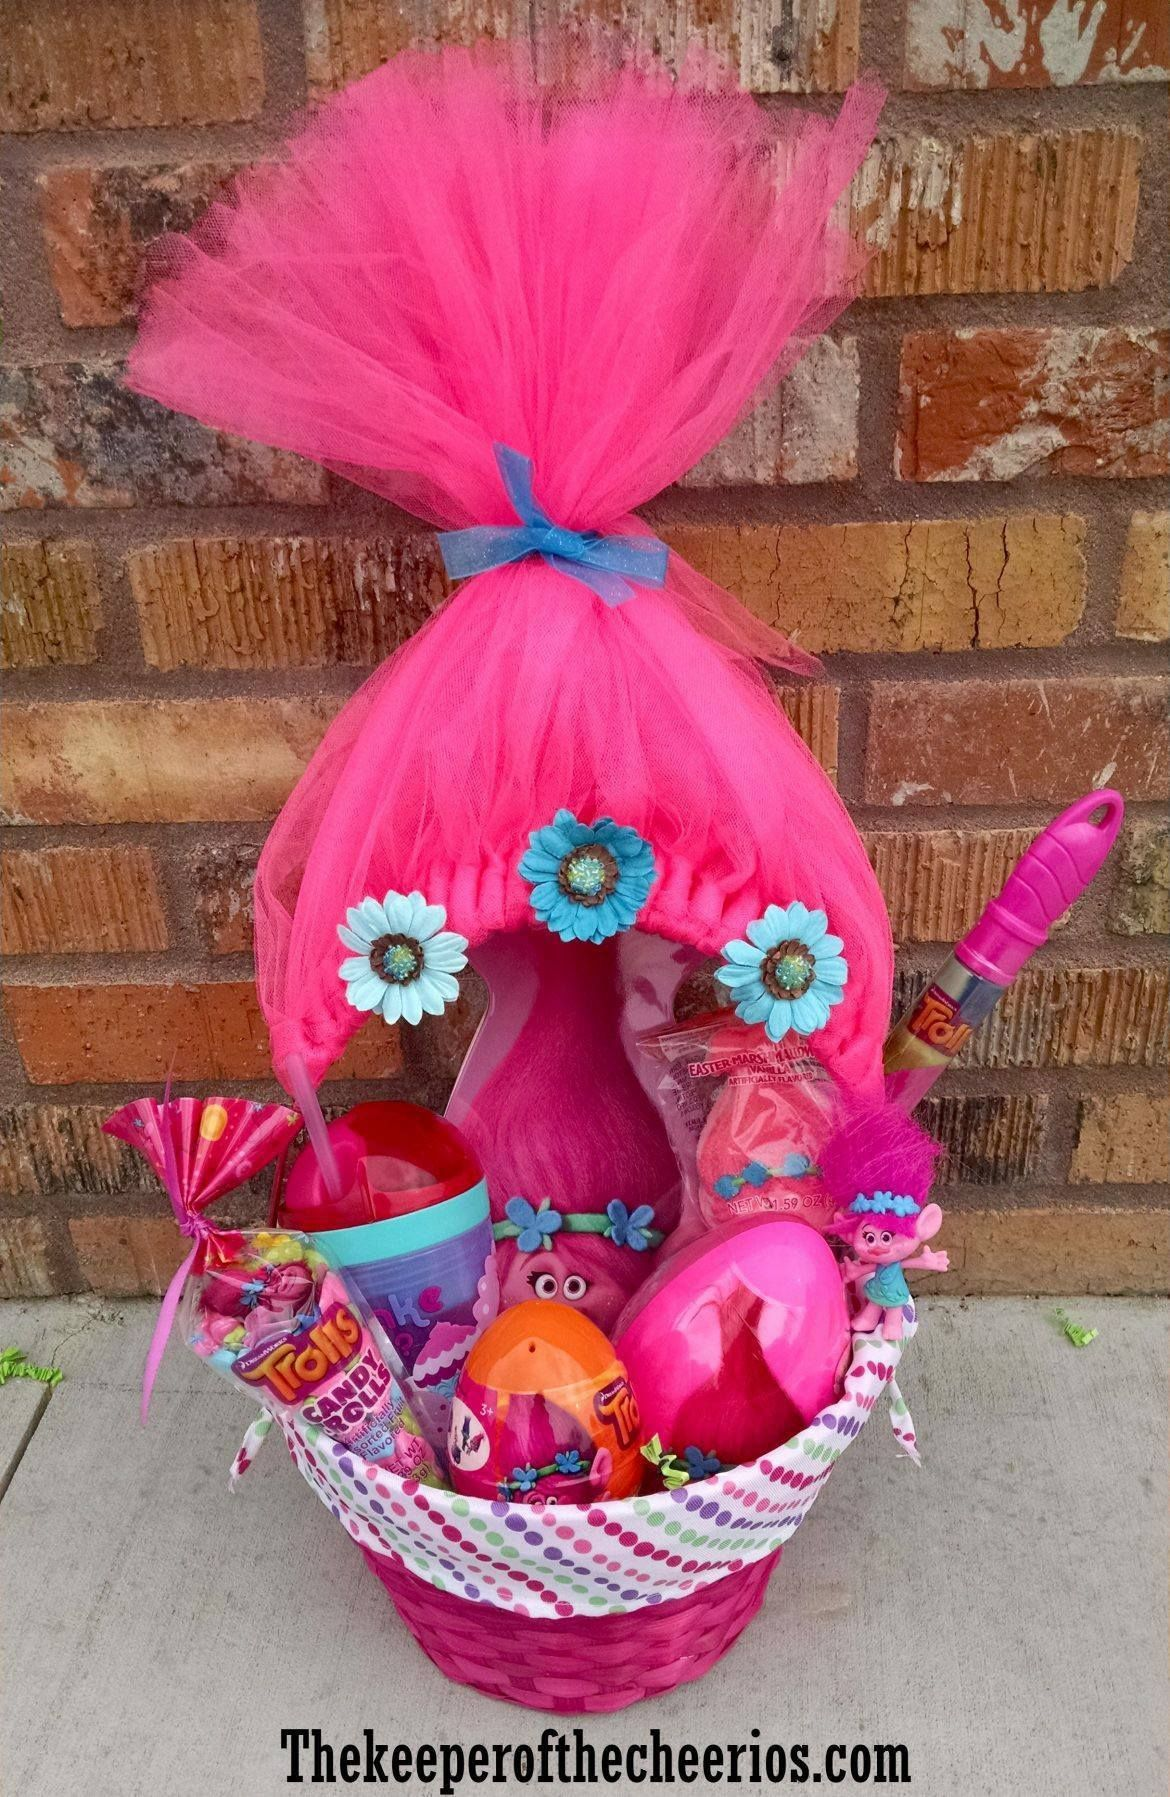 Trolls themed easter basketese are the best easter basket trolls themed easter basketese are the best easter basket ideas negle Images